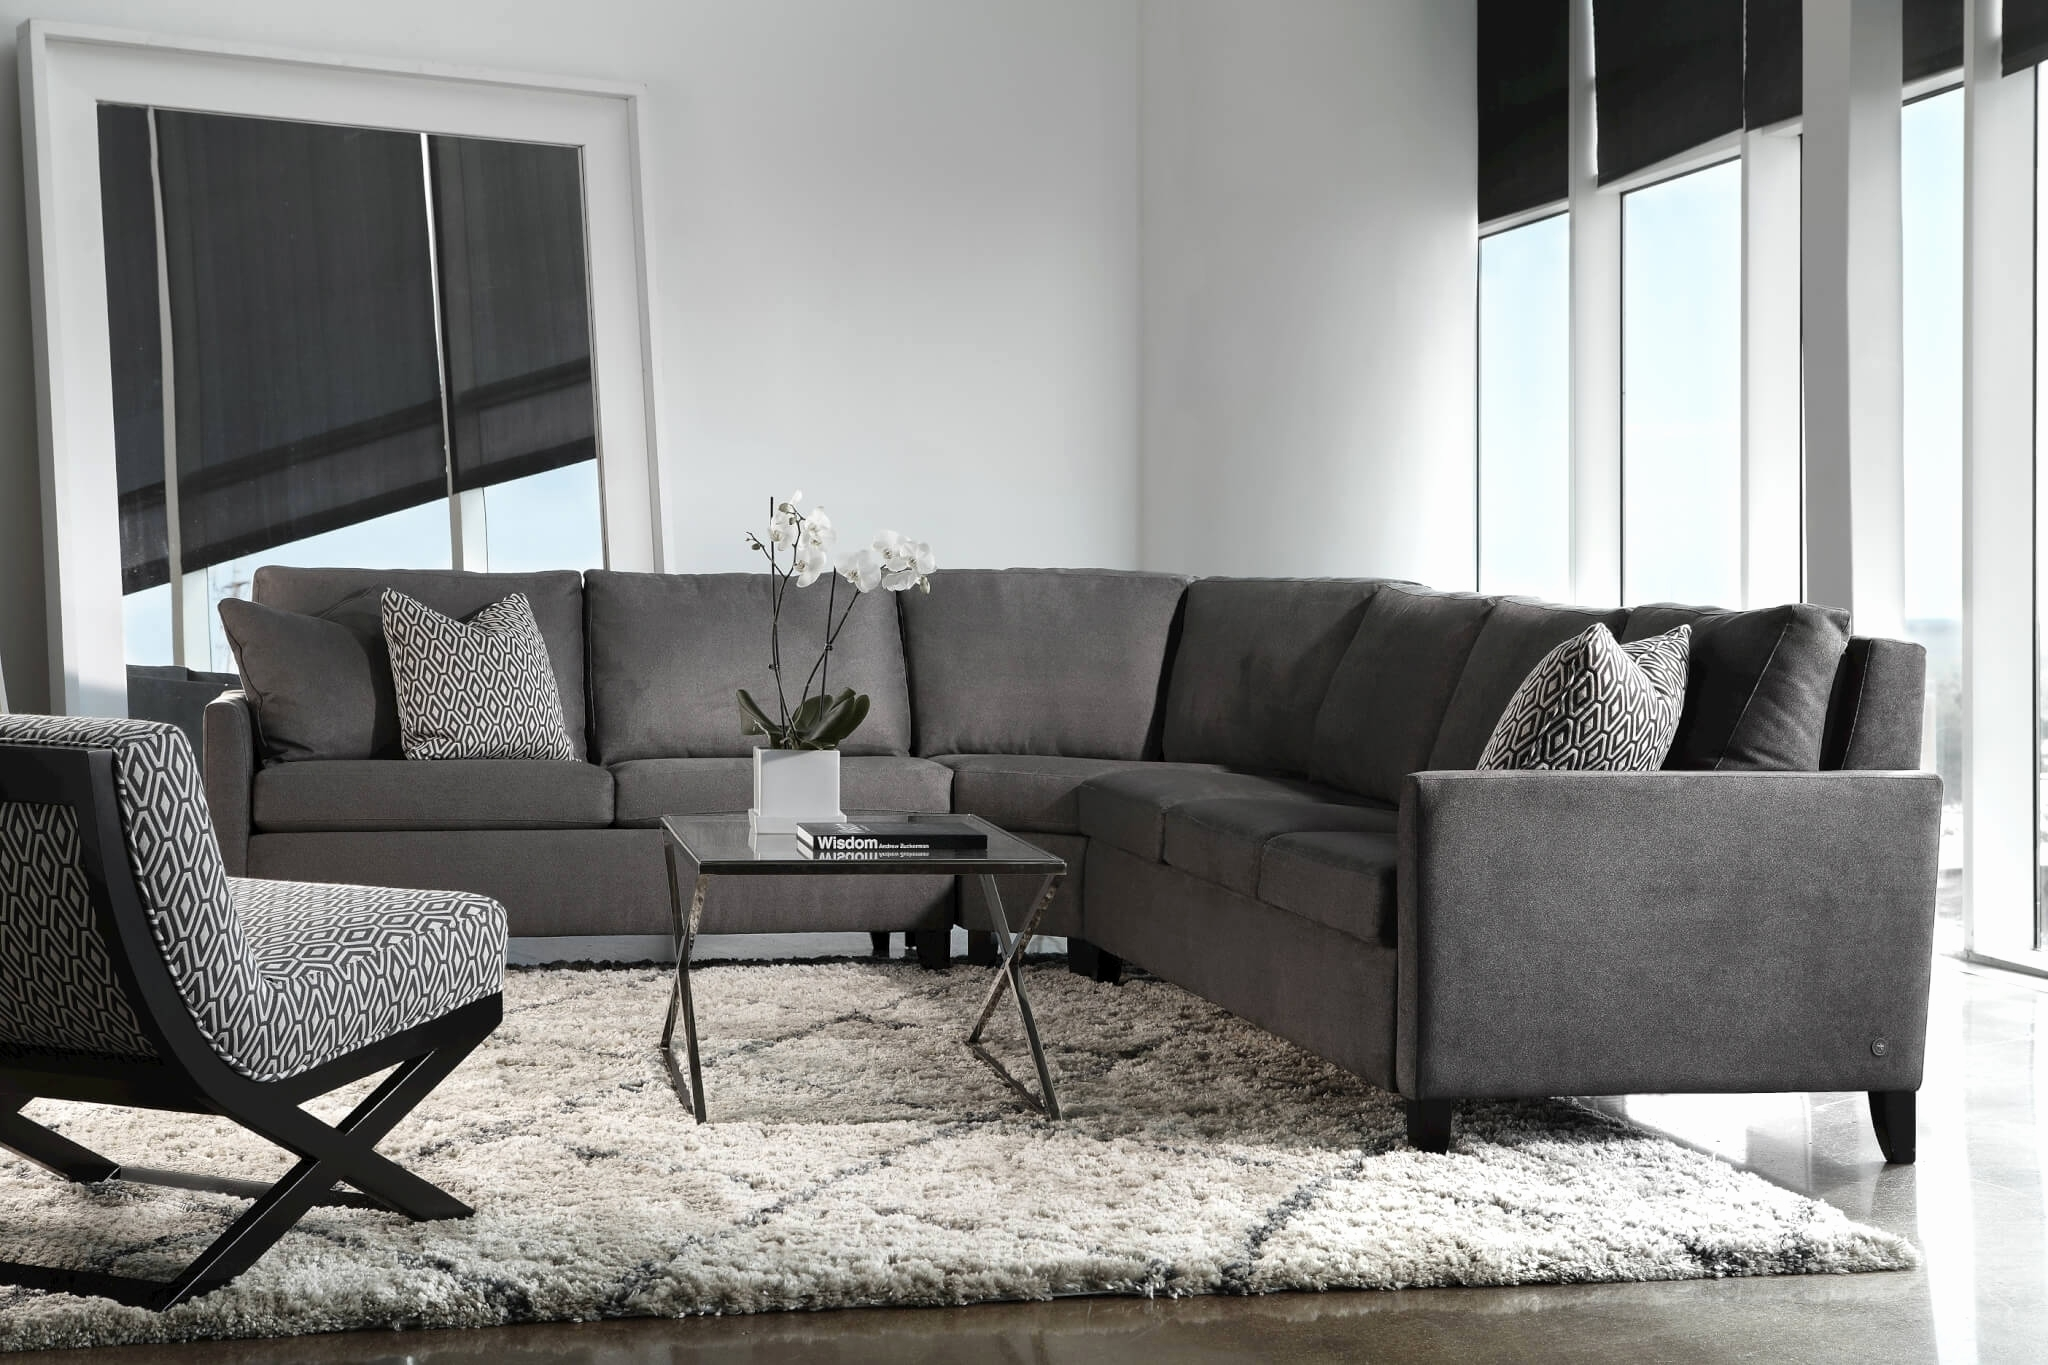 Unique Armless Sleeper Sofa 2018 – Couches Ideas in Panama City Fl Sectional Sofas (Image 10 of 10)